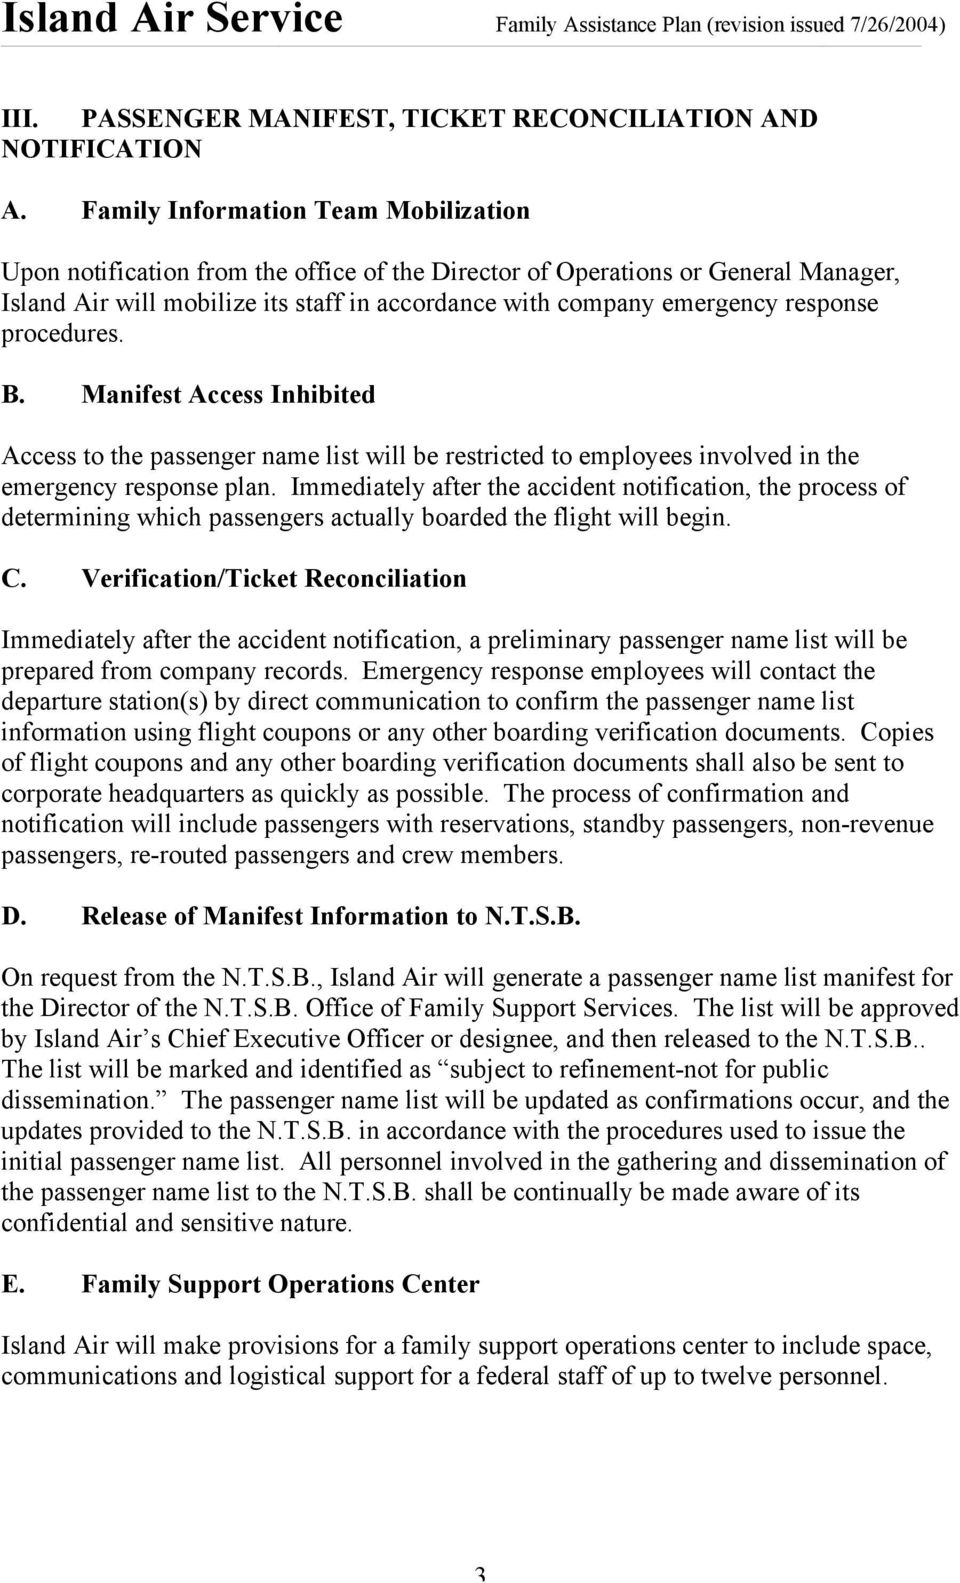 response procedures. B. Manifest Access Inhibited Access to the passenger name list will be restricted to employees involved in the emergency response plan.